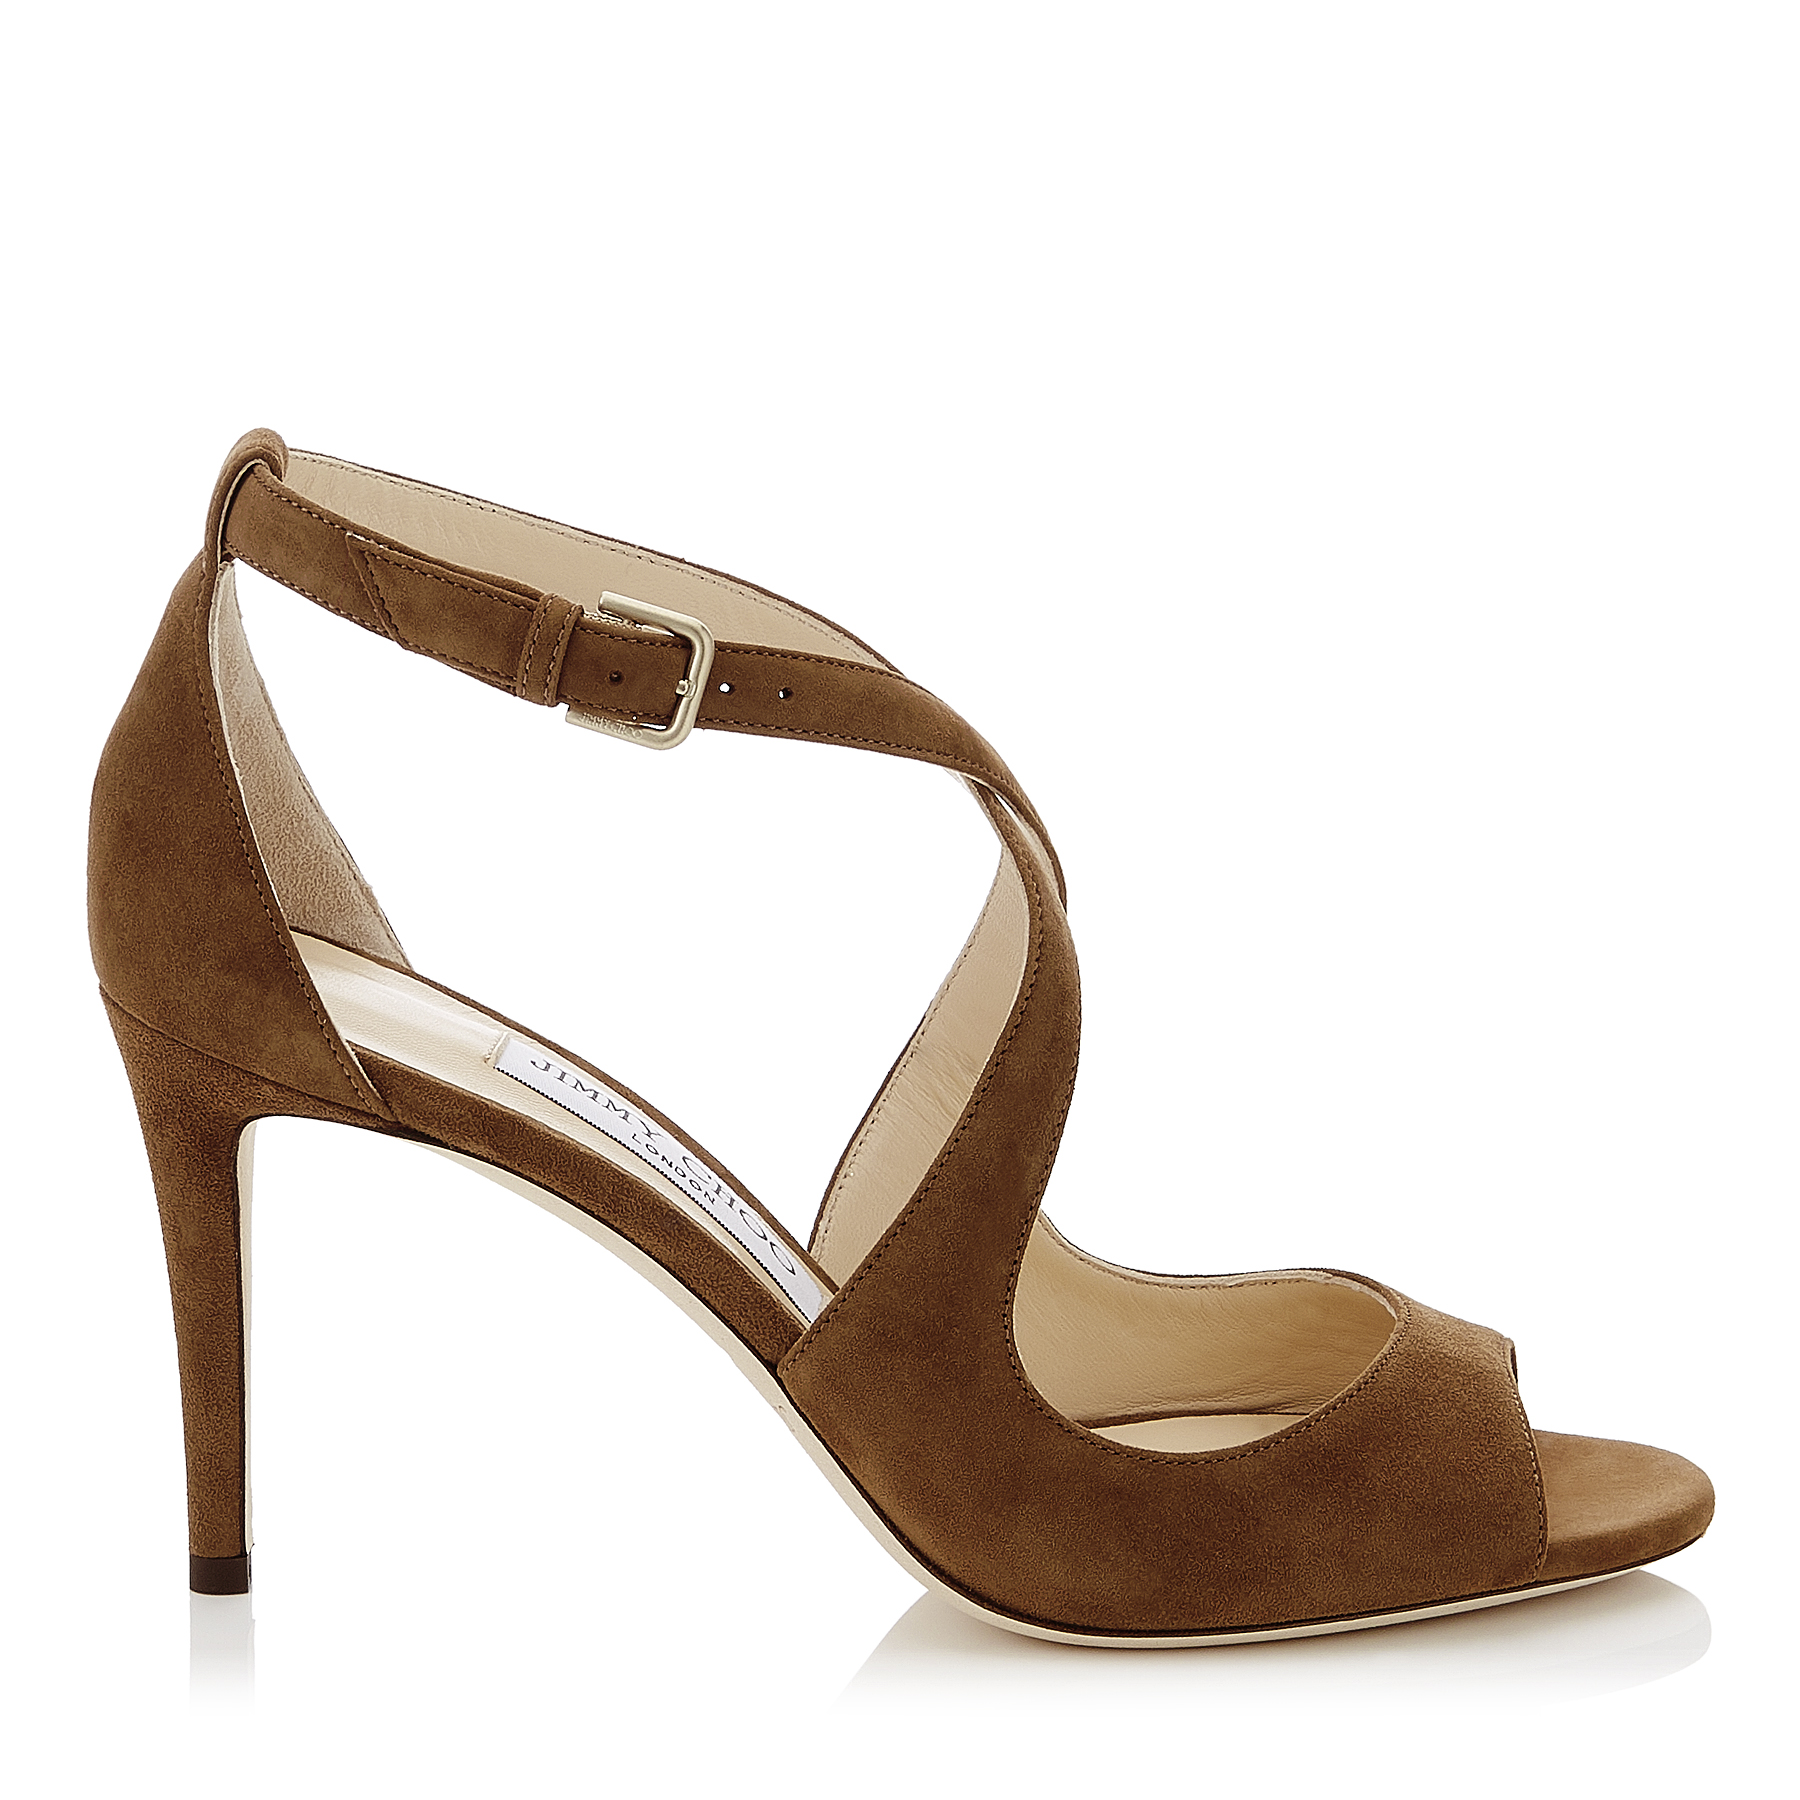 EMILY 85 Cacao Suede Sandals by Jimmy Choo